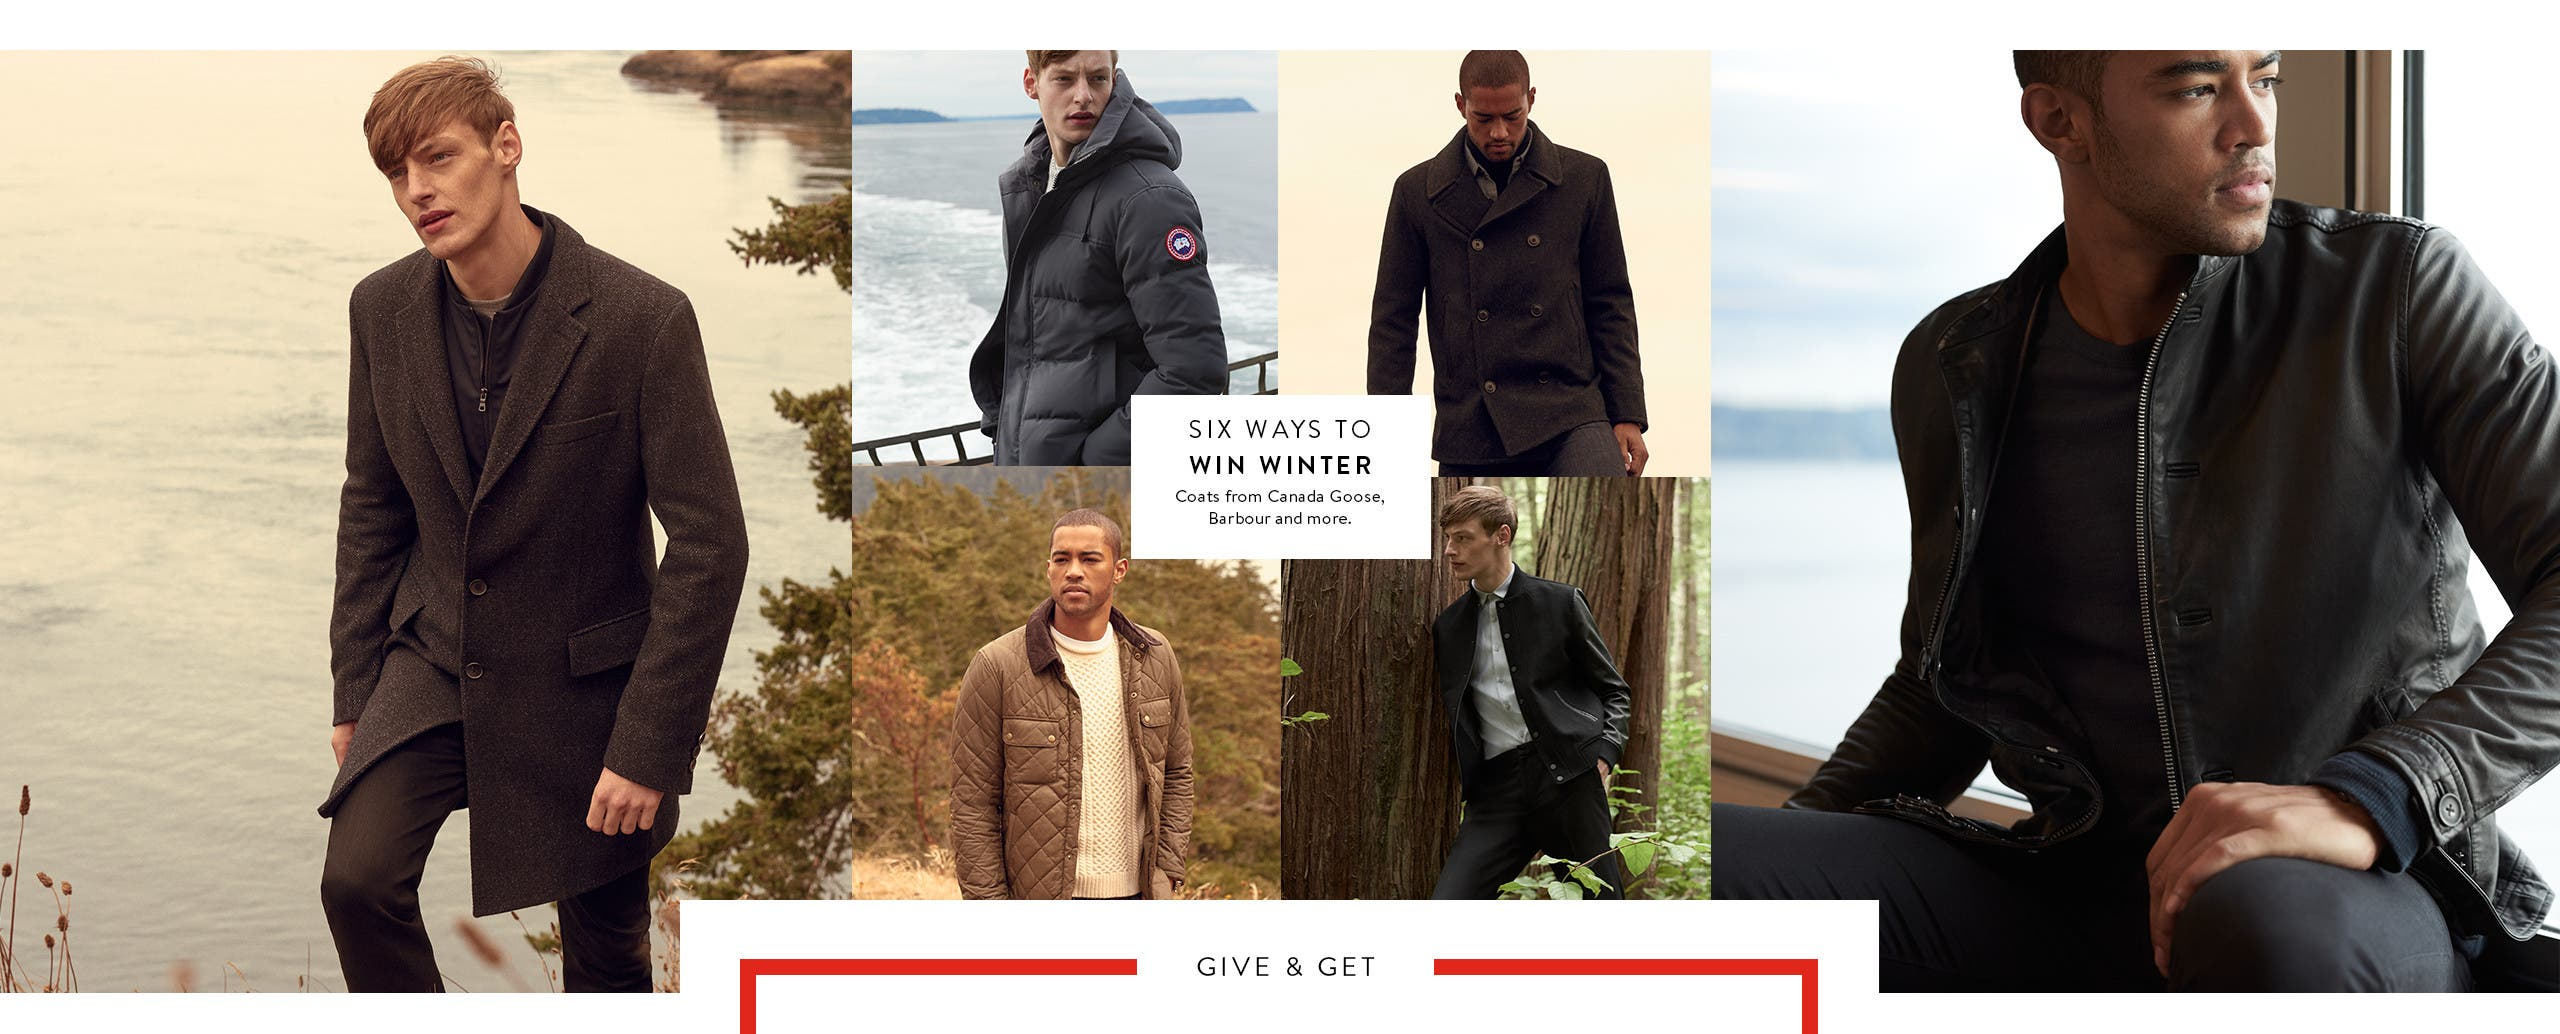 Six ways to win winter: winter coats for men.